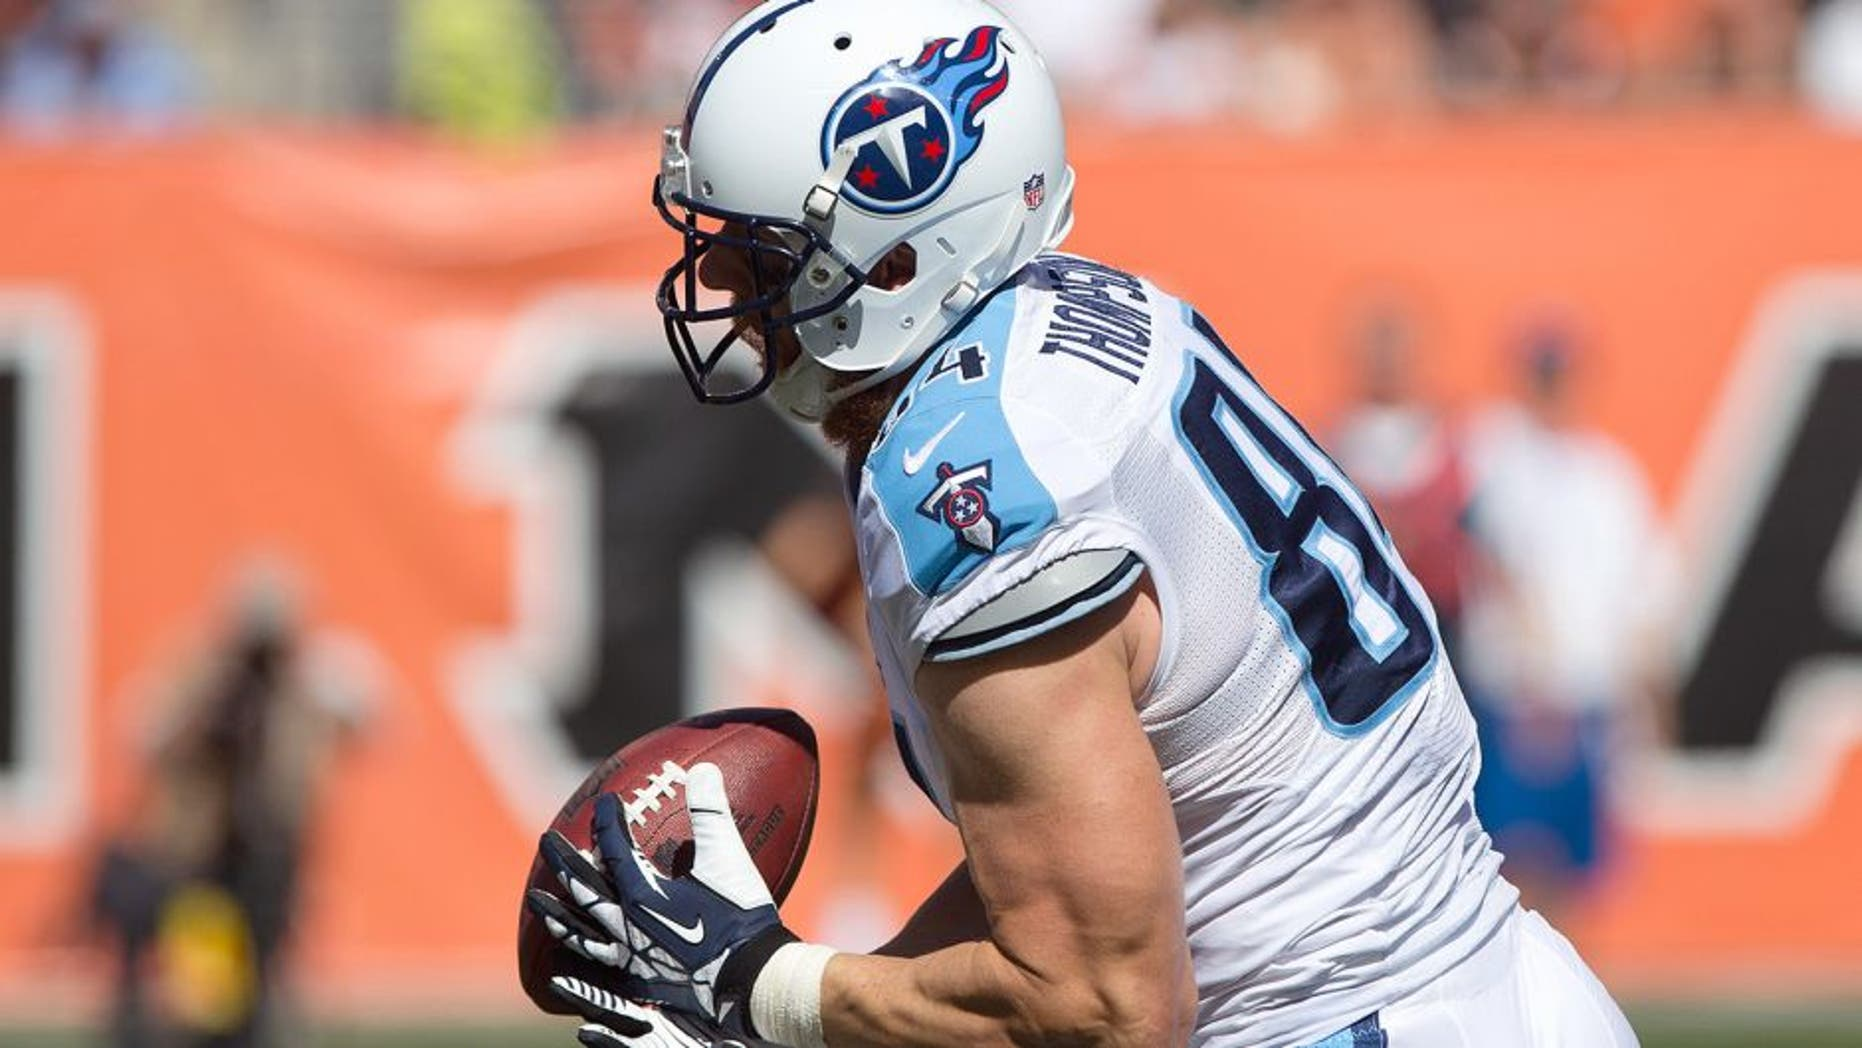 Sep 21, 2014; Cincinnati, OH, USA; Tennessee Titans tight end Taylor Thompson (84) is unable to make a catch against the Cincinnati Bengals at Paul Brown Stadium. The Bengals won 33-7. Mandatory Credit: Aaron Doster-USA TODAY Sports